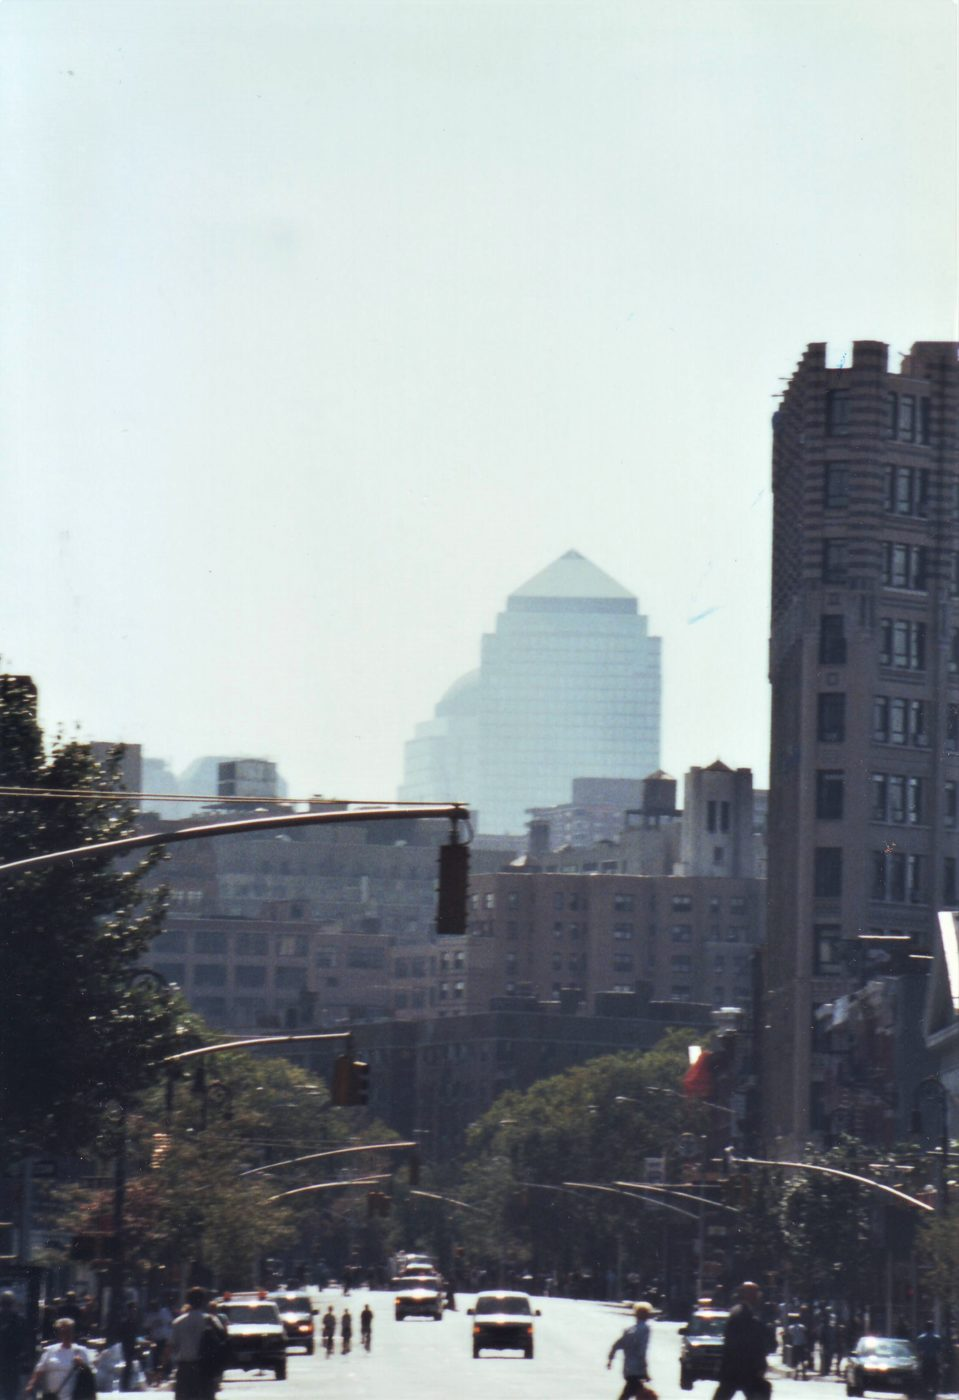 Marjorie Zien - 911 twin towers no longer visible looking south on (I think) 6th av)